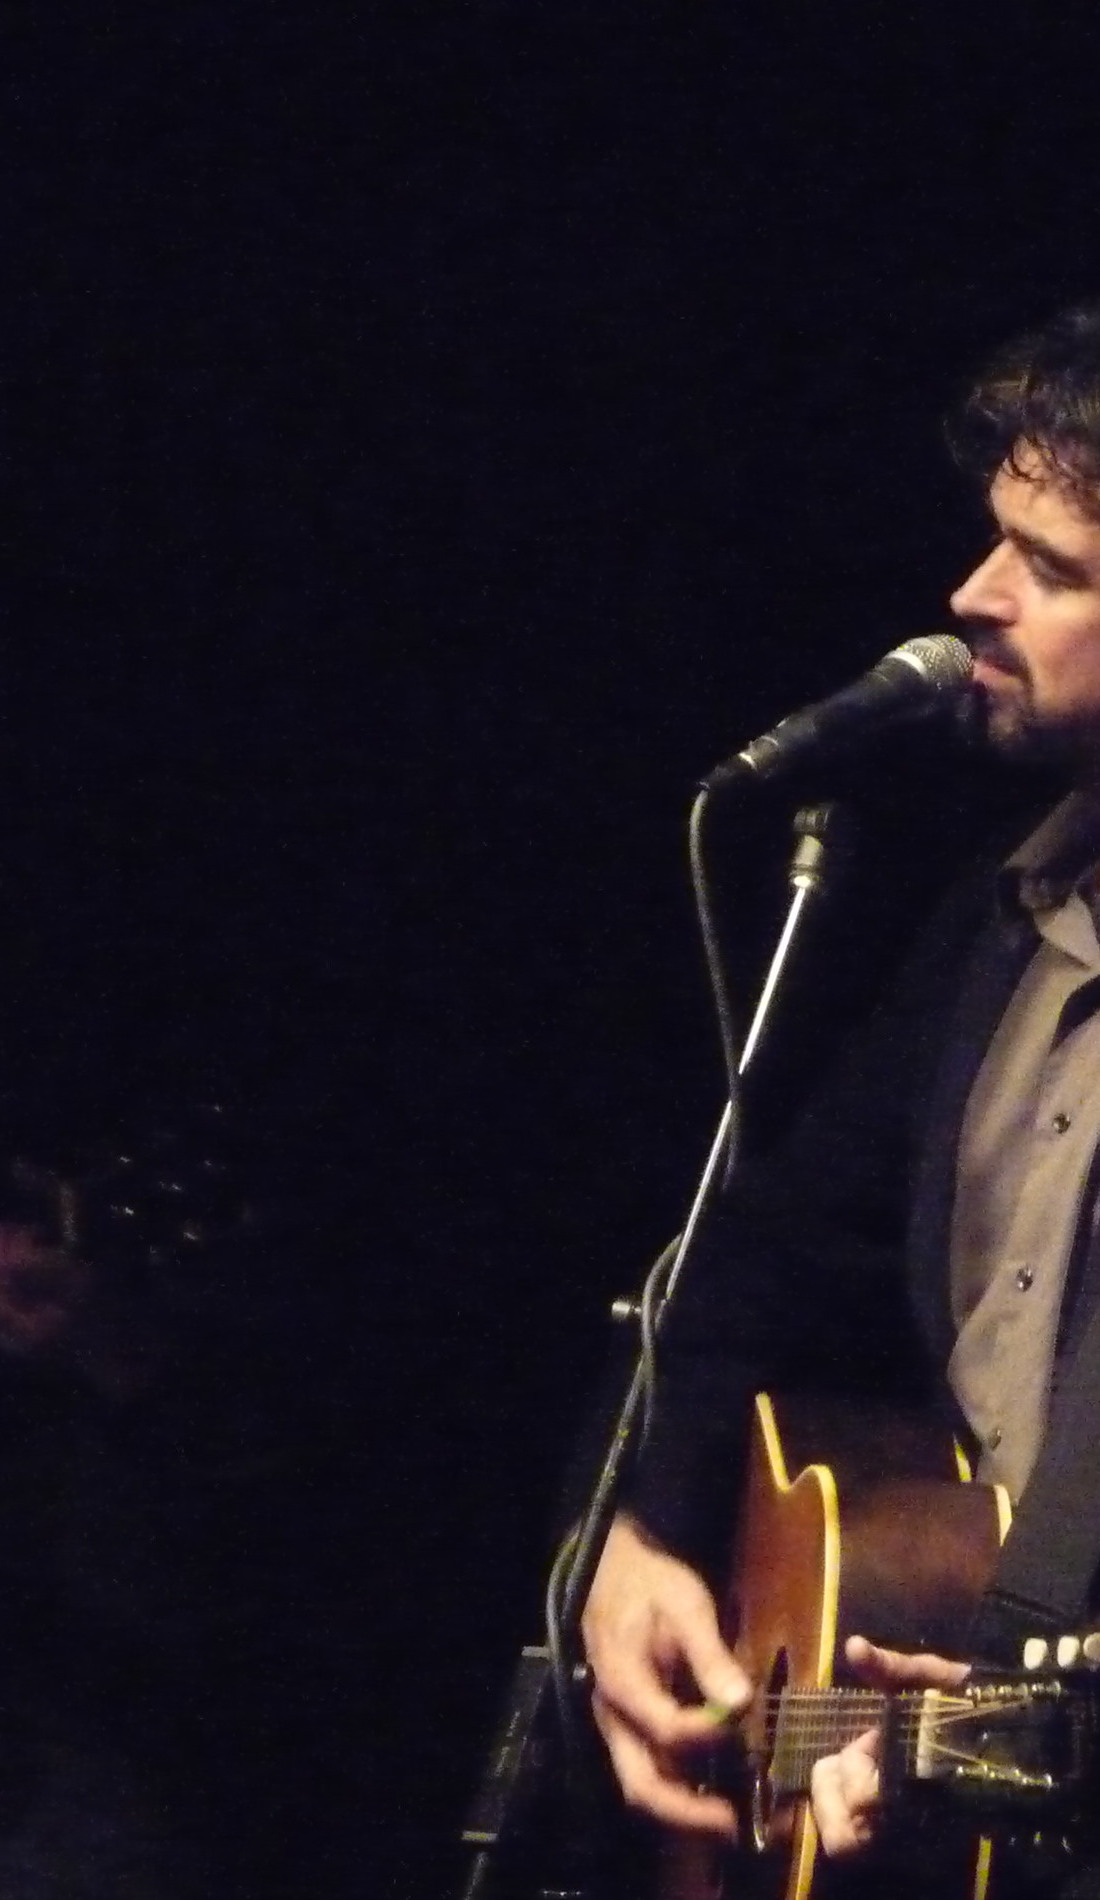 A Slaid Cleaves live event